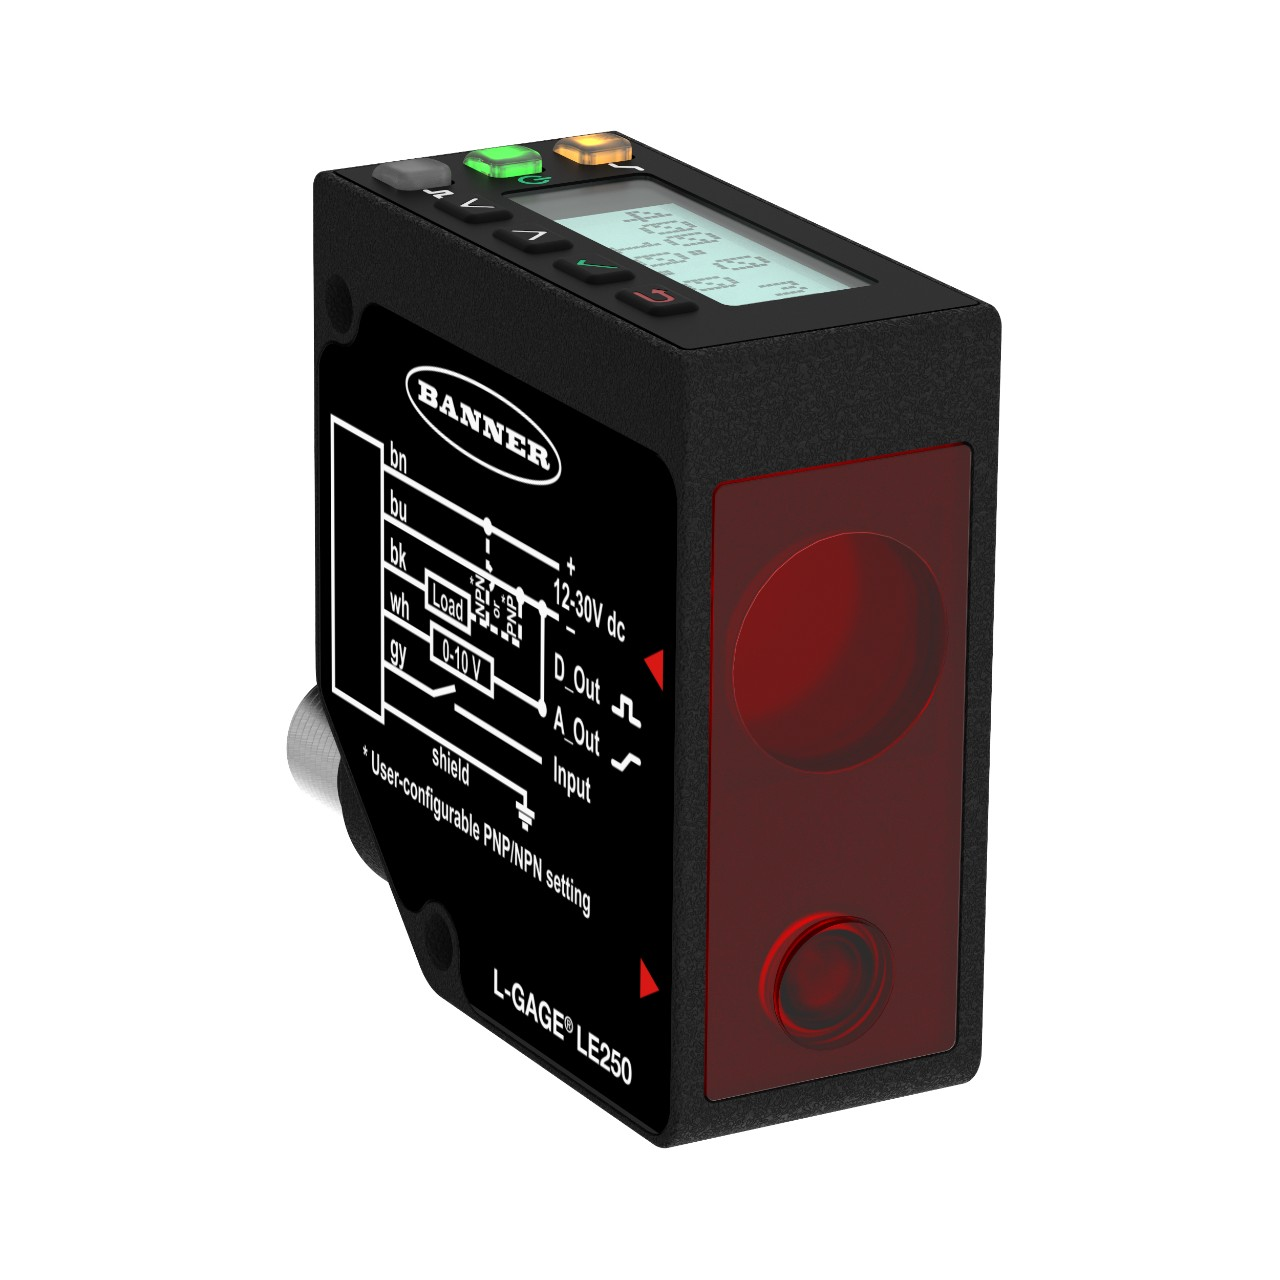 LE laser measurement sensor